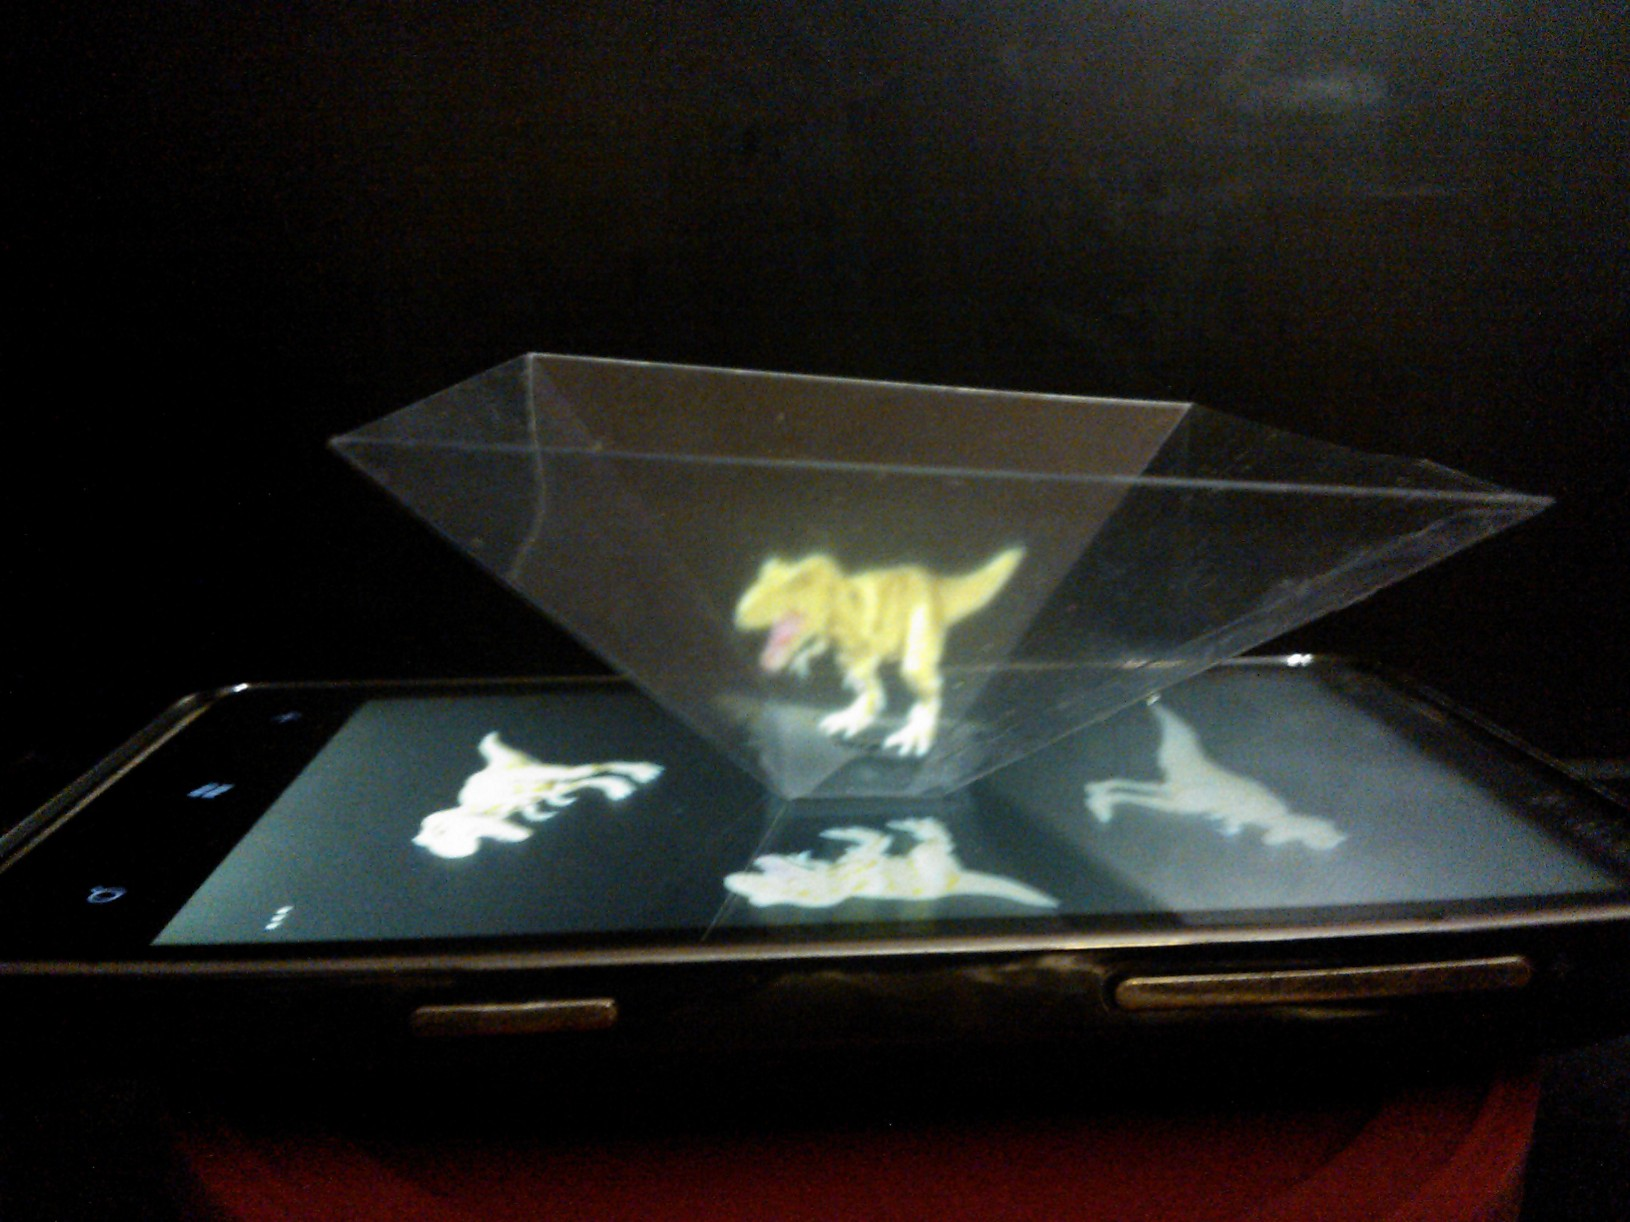 Hologram of Dinosour Toy in Holograpic Pyramid